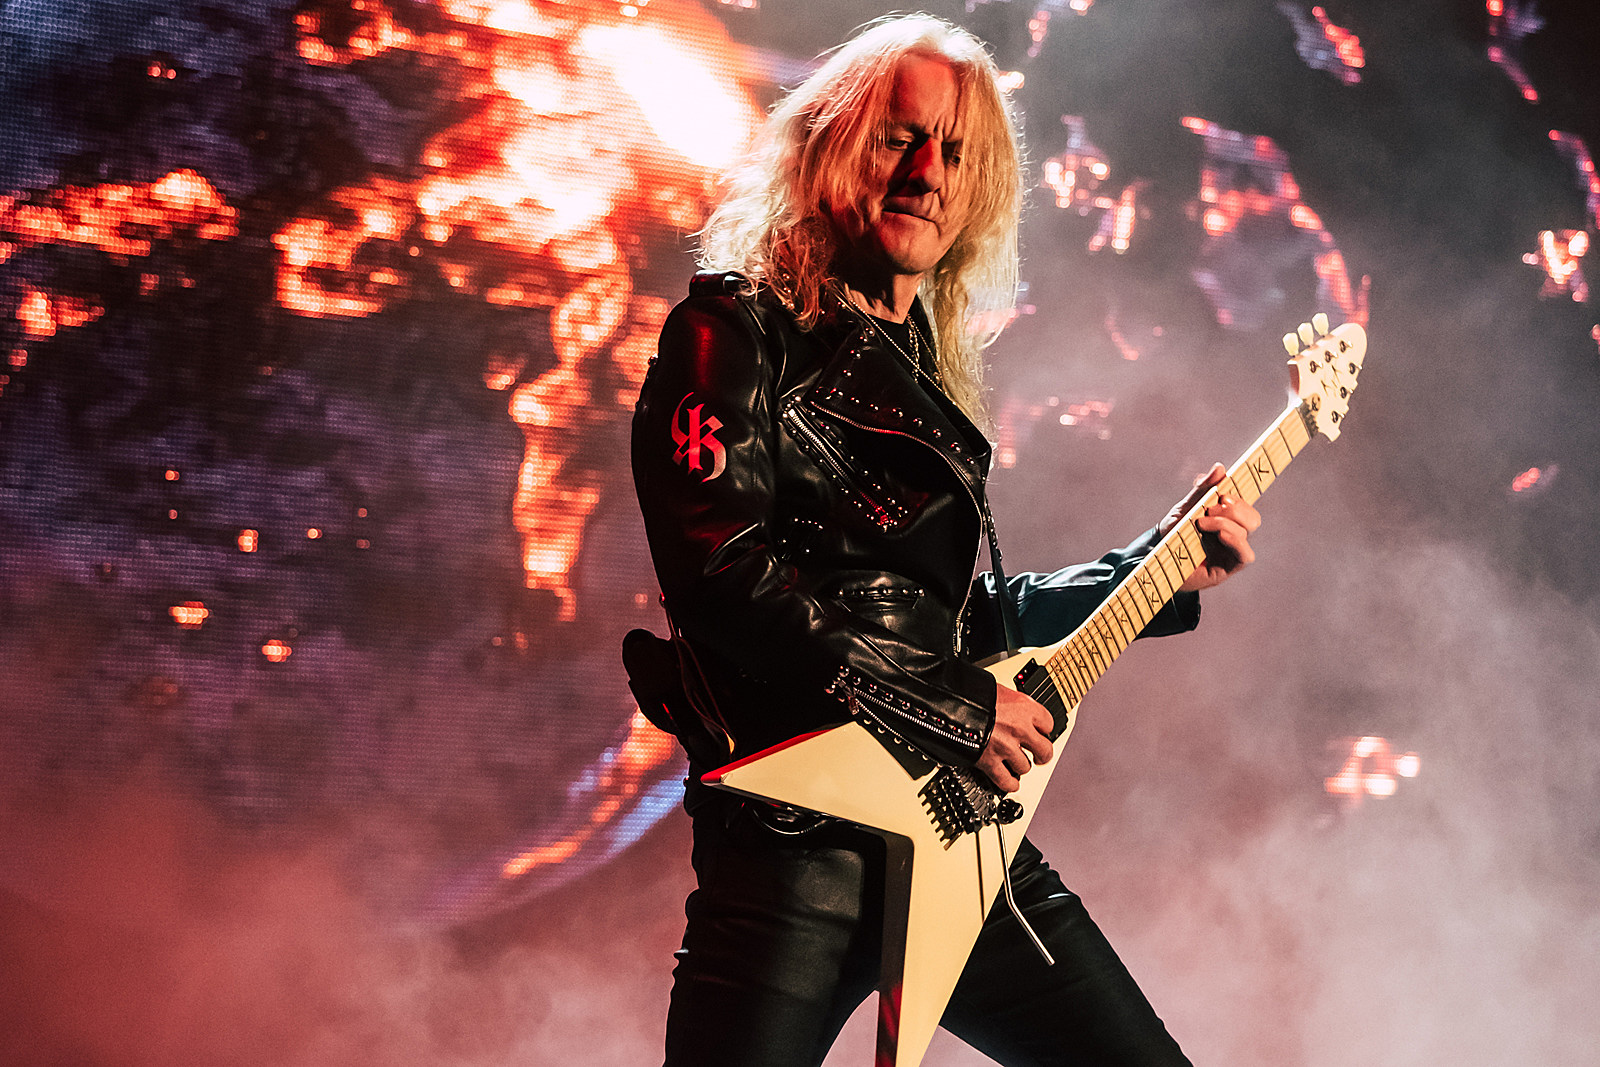 K.K. Downing Couldn't Cut Ties and 'Leave It All in the Past'